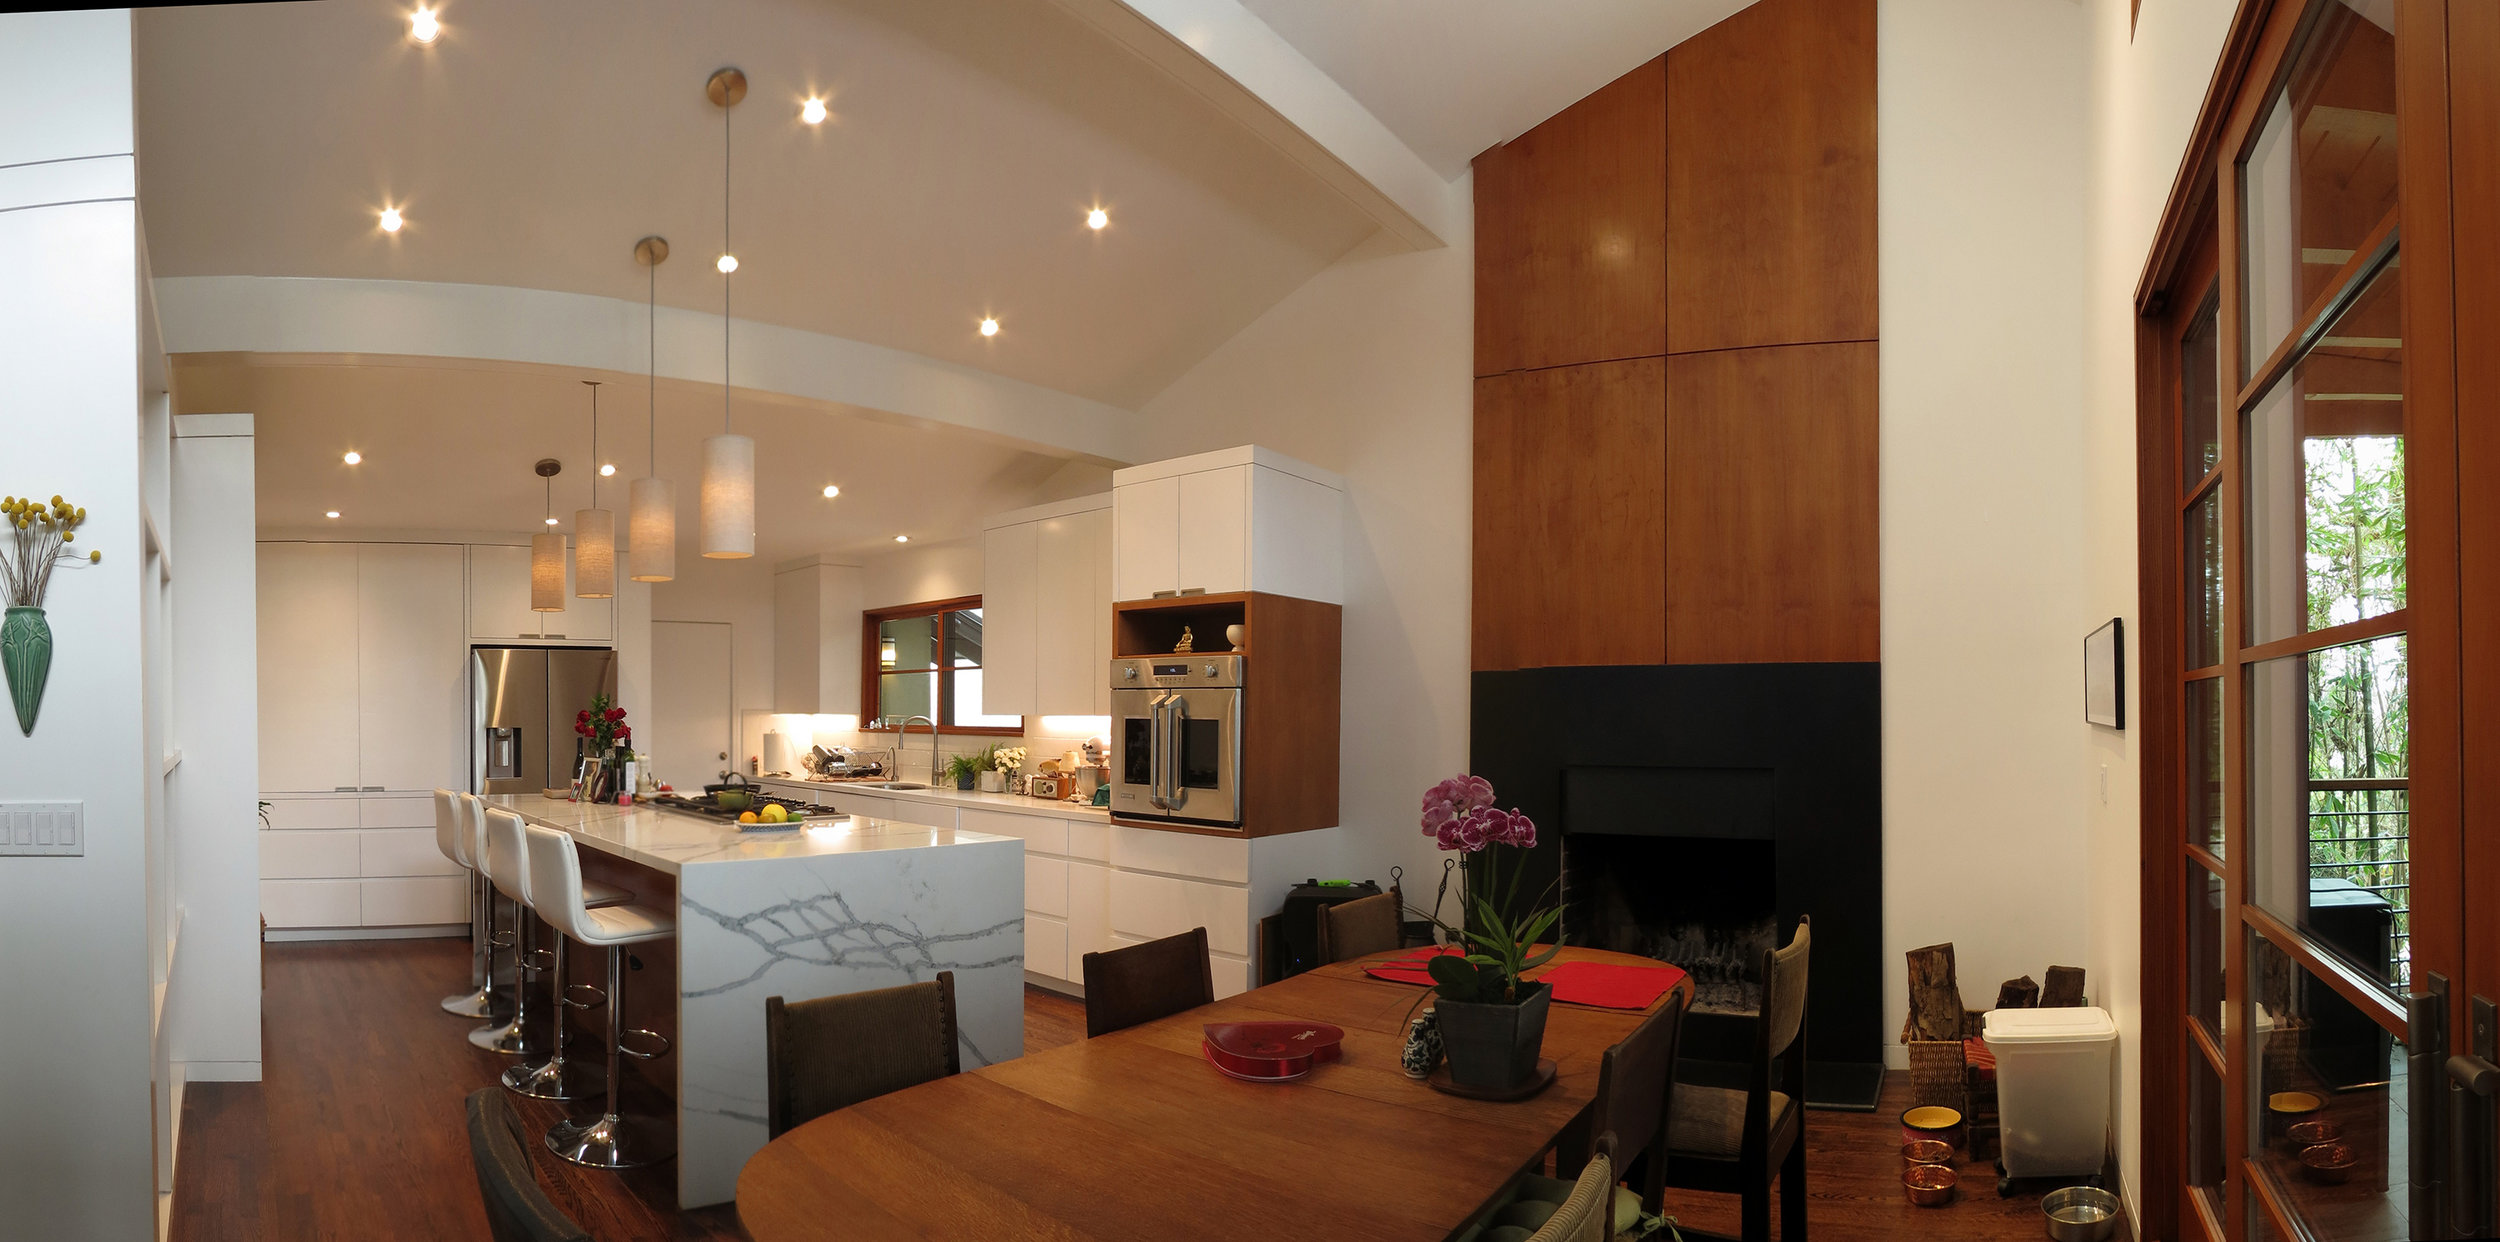 georgearchitecture_younghouse_kitchen03_3000.jpg